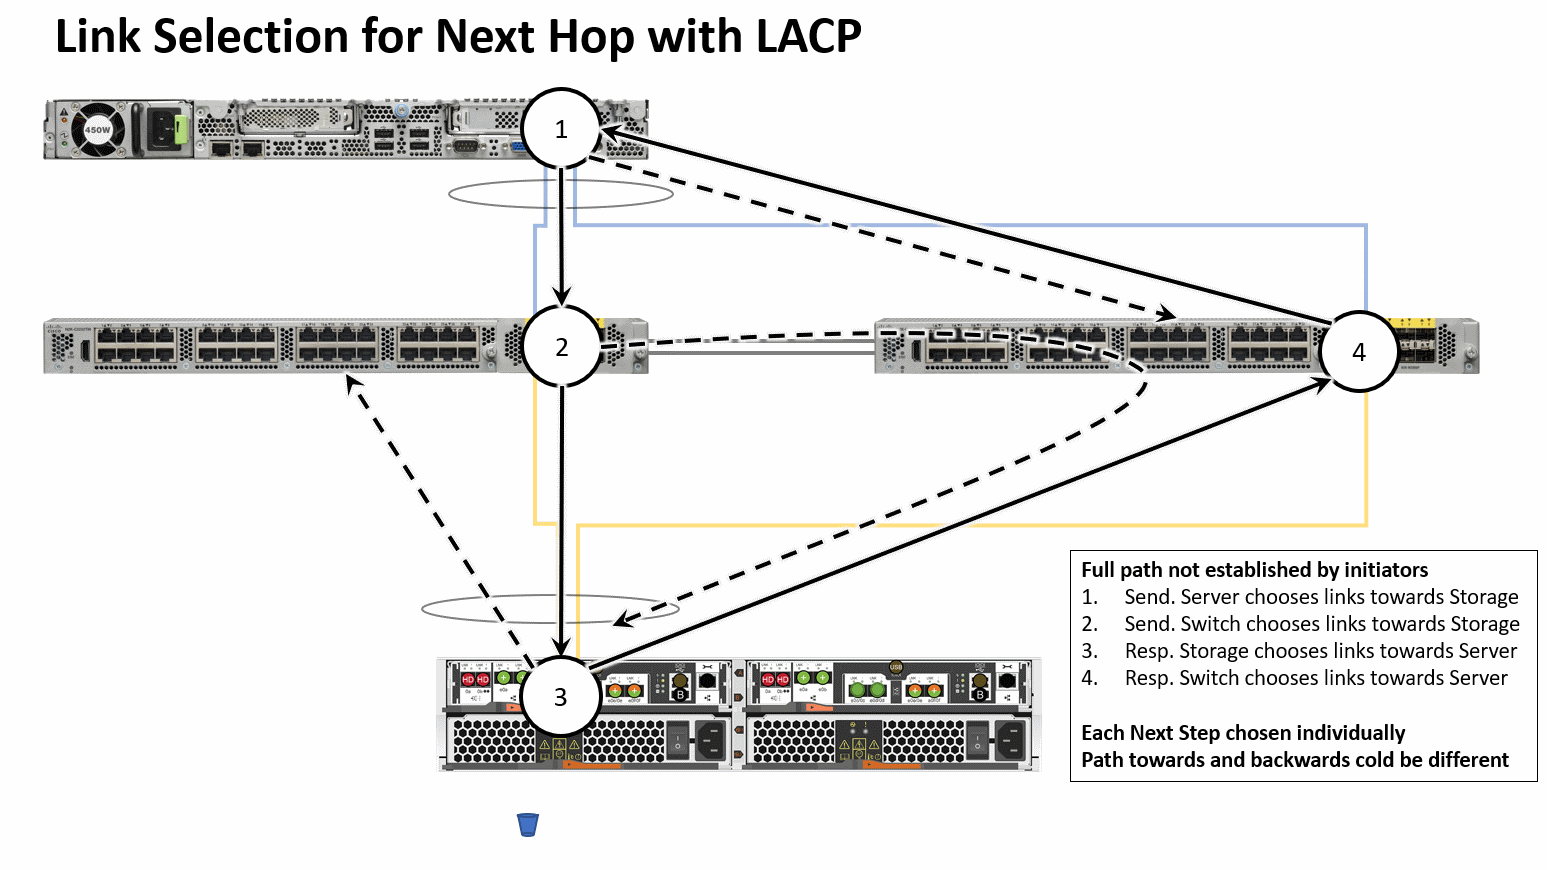 2) Link Selection for Next Hop with LACP